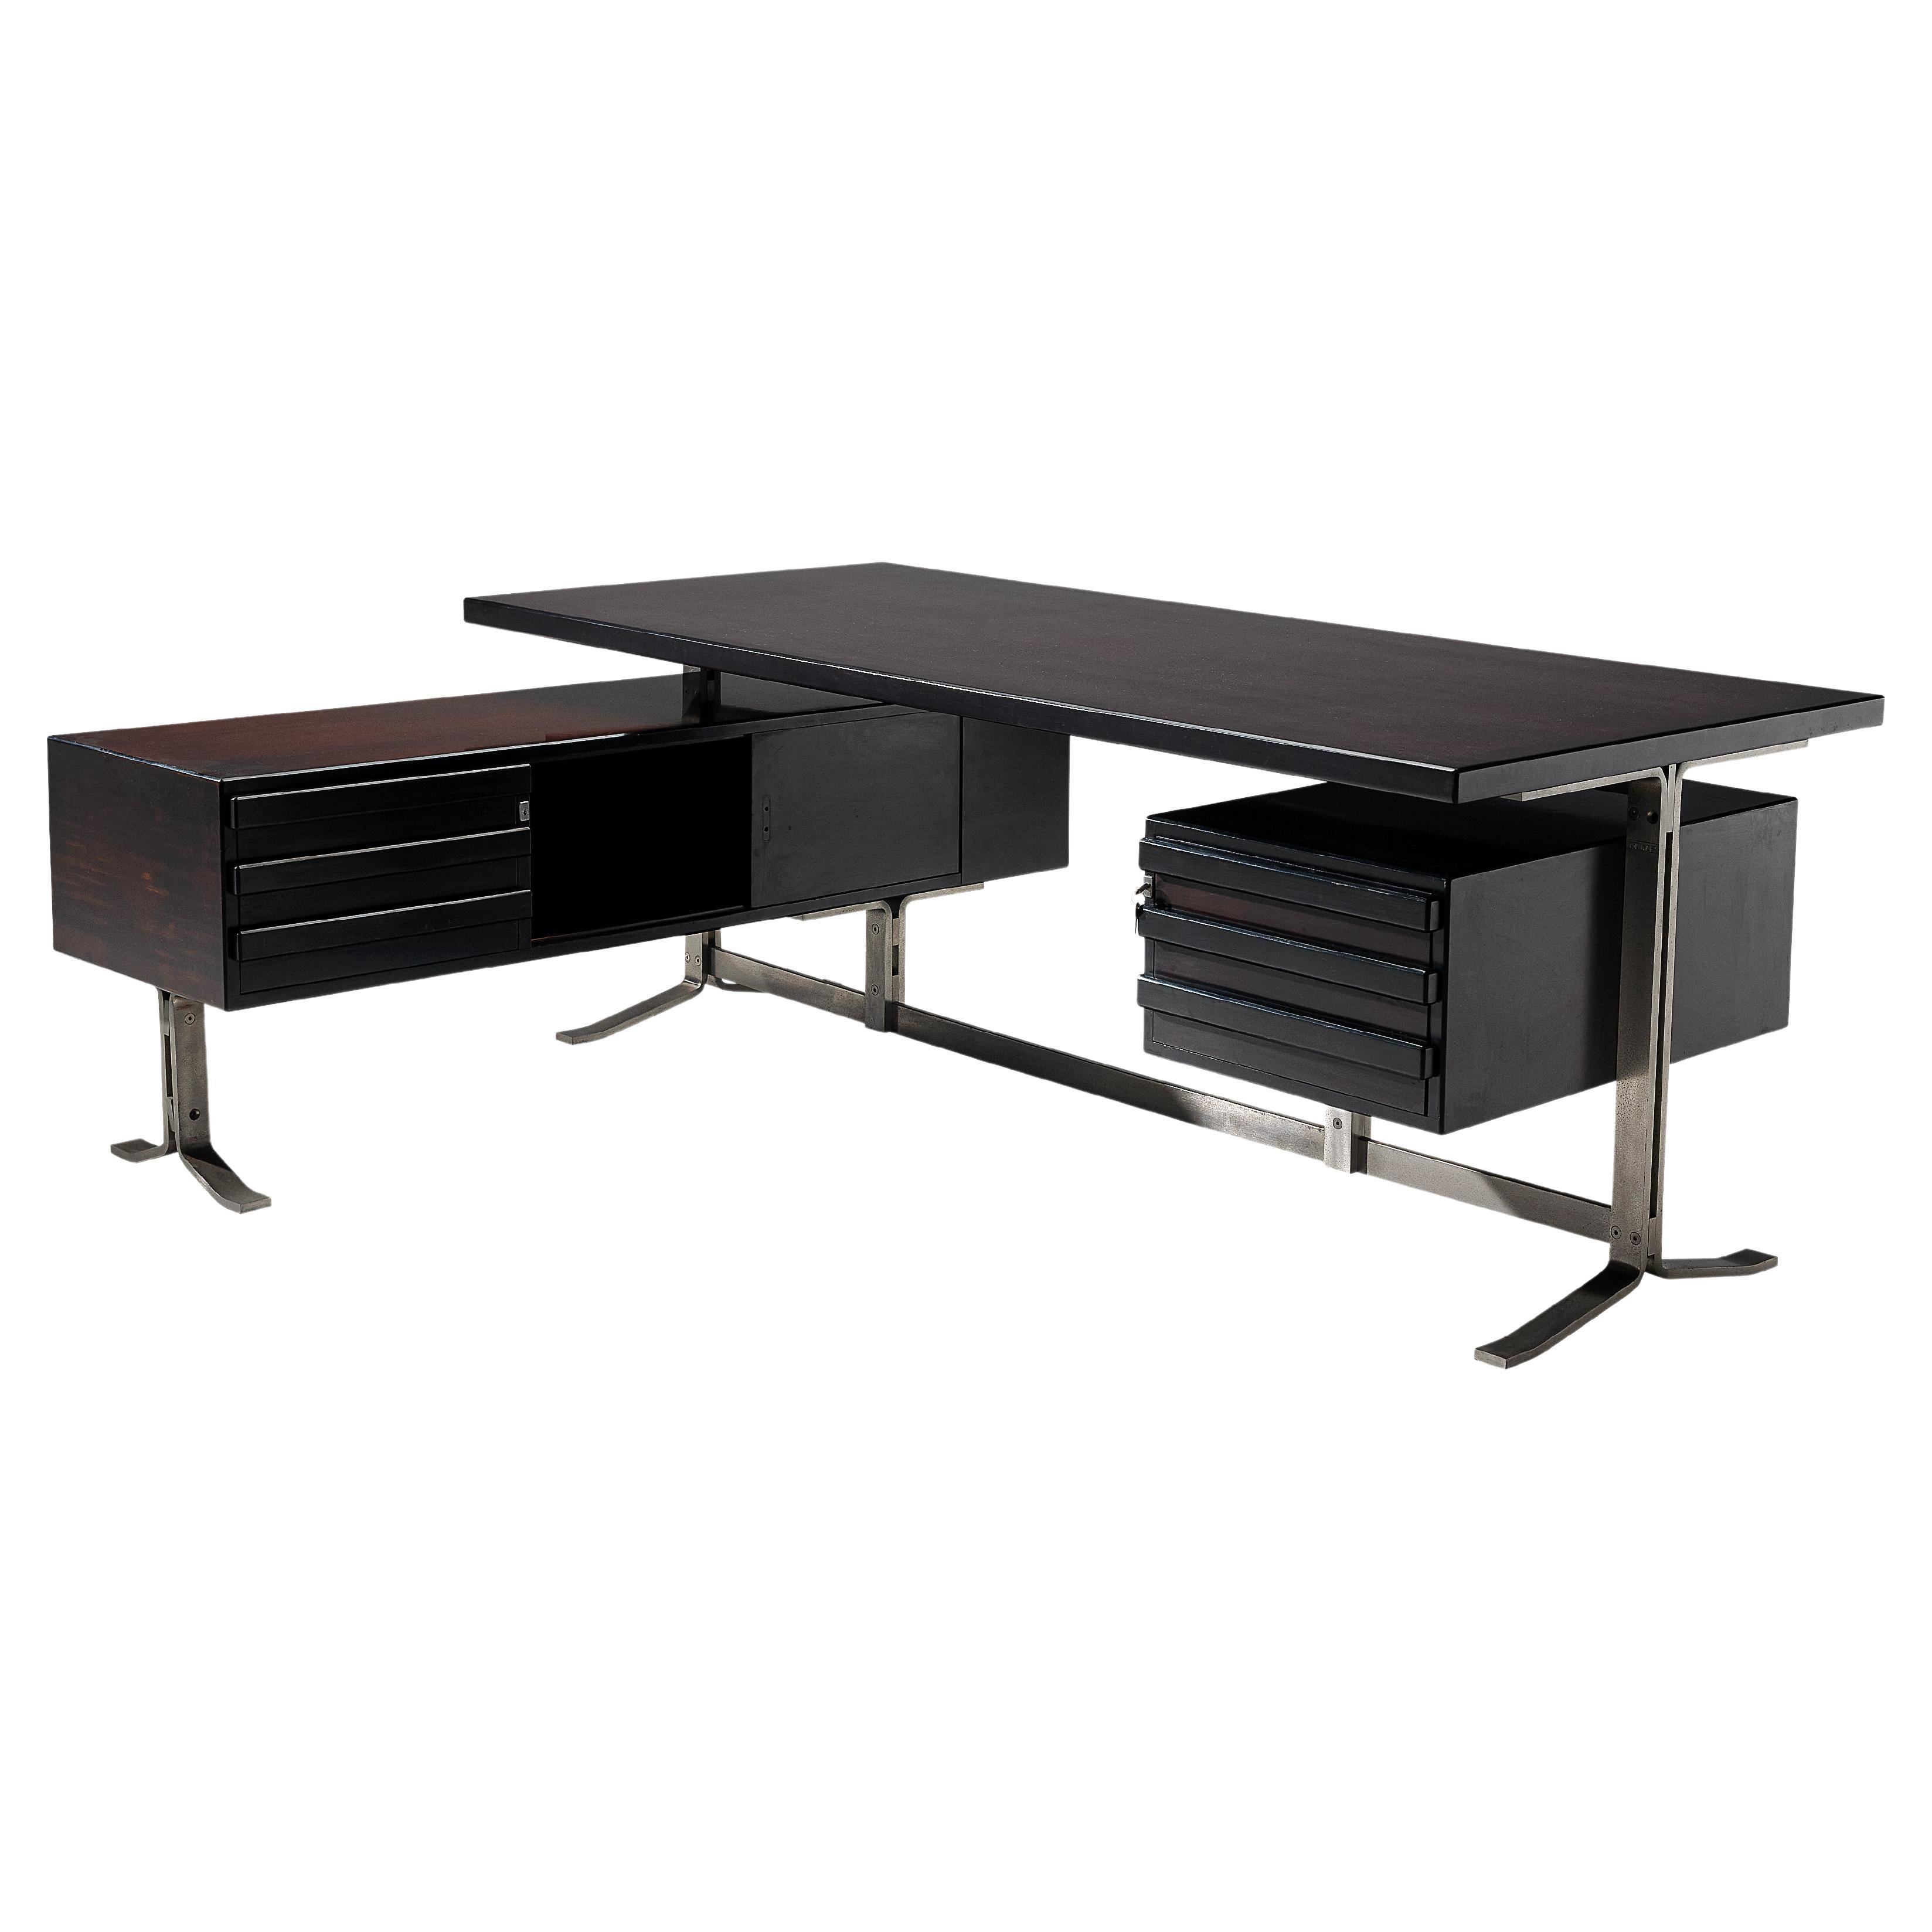 Gianni Moscatelli for Formanova Executive Desk in Stained Mahogany